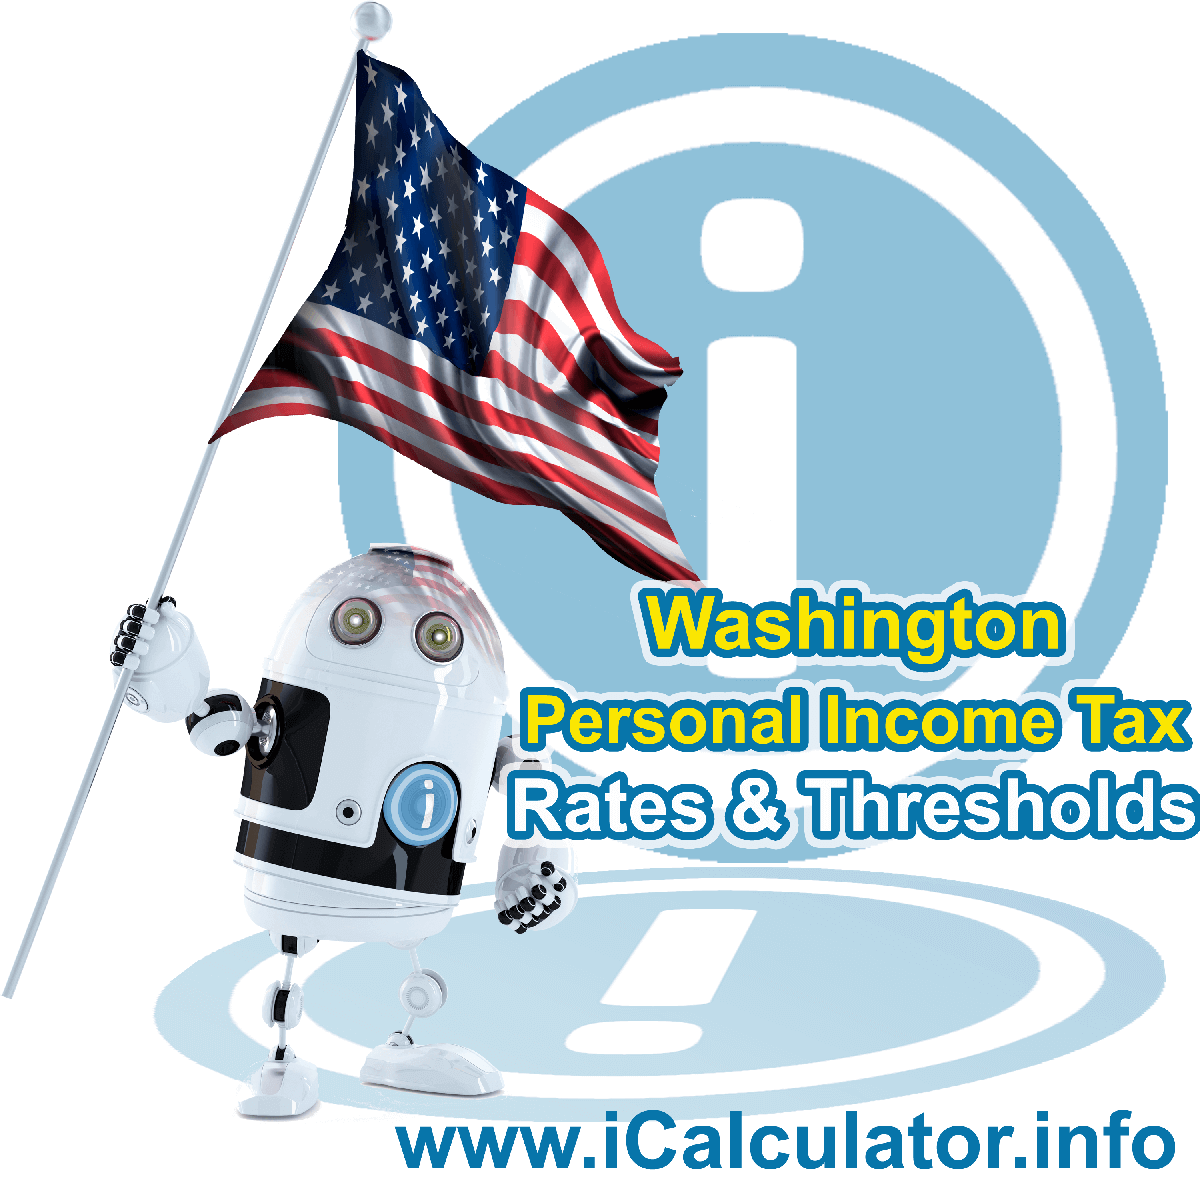 Washington State Tax Tables 2019. This image displays details of the Washington State Tax Tables for the 2019 tax return year which is provided in support of the 2019 US Tax Calculator